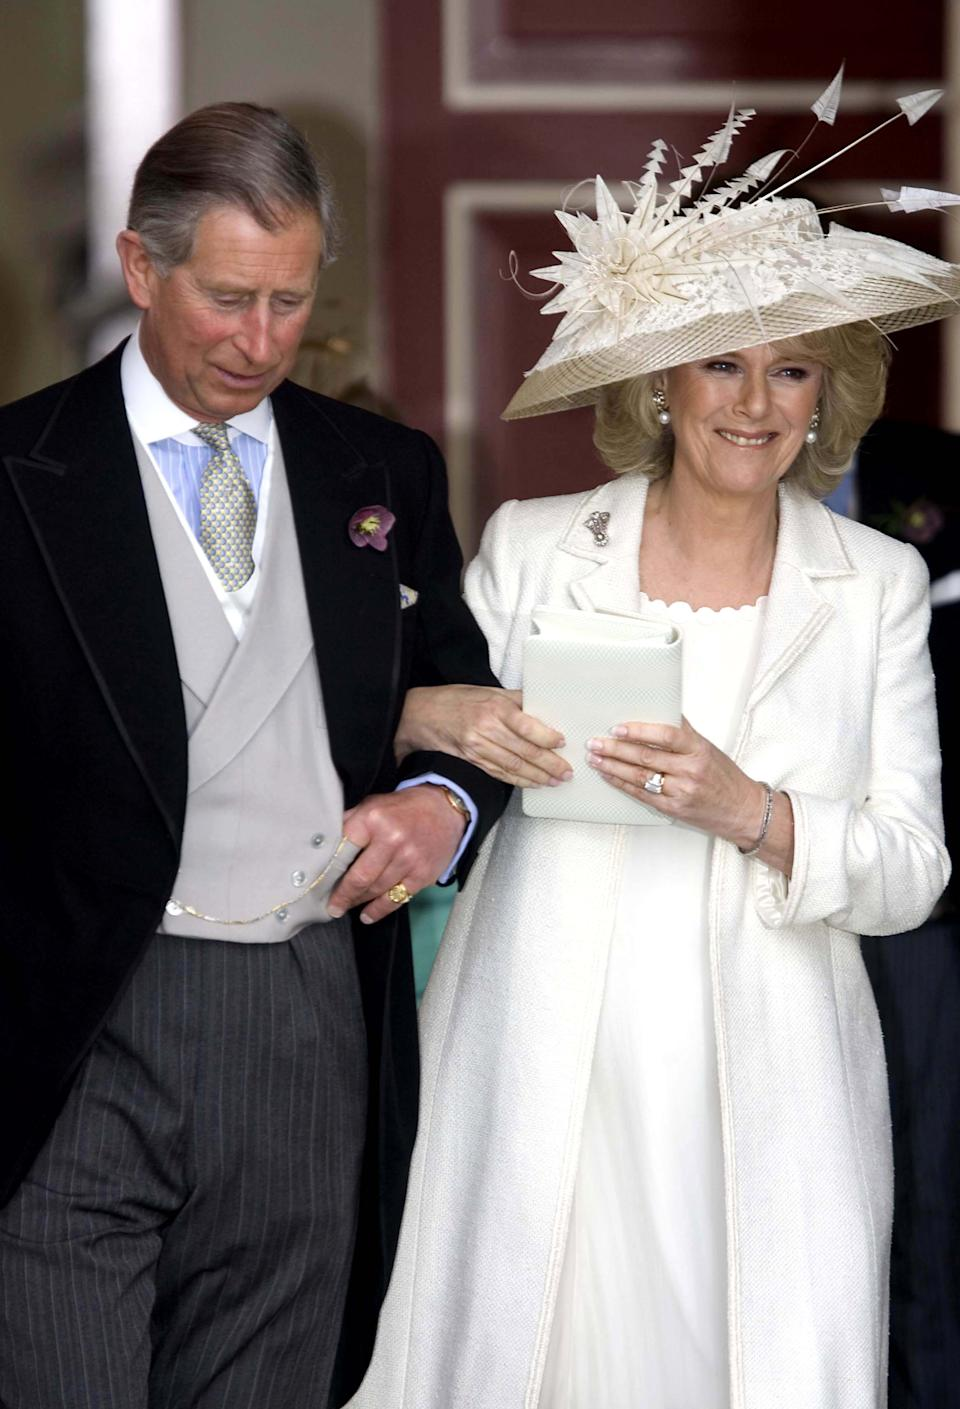 <p>Believe it or not, Camilla has reworn her wedding dress. In 2007 she brought back one of the dresses she wore on her wedding day in 2005 - so if it's still in her wardrobe, perhaps we will see it again at Ascot. (Anwar Hussein Collection/ROTA/WireImage)</p>